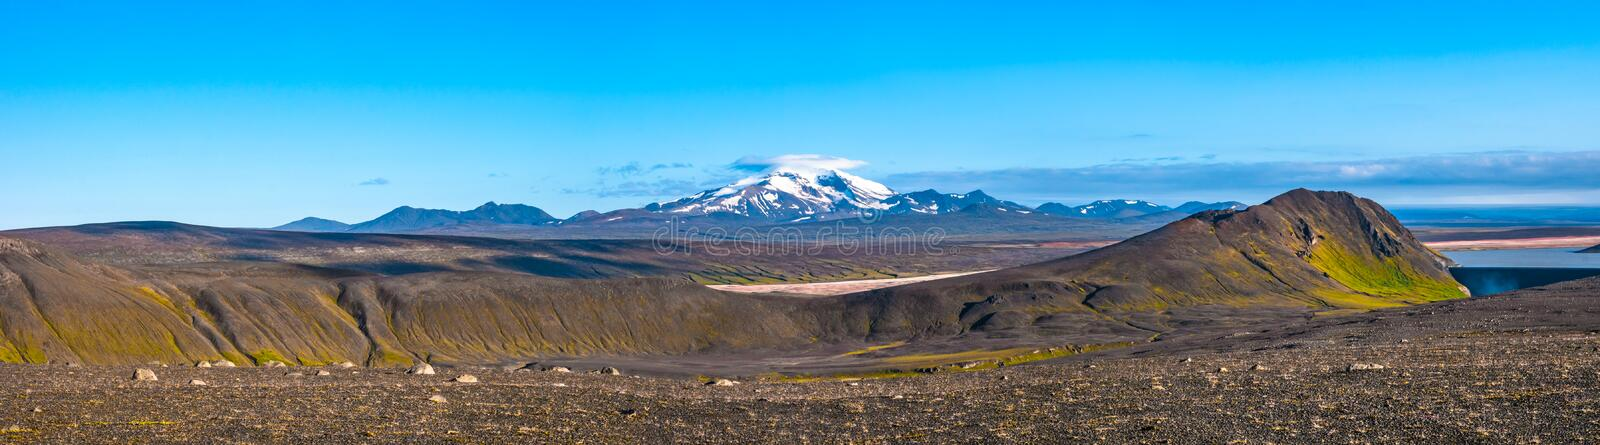 Panoramic view of beautiful colorful Icelandic landscape, Snaefells peak, Iceland royalty free stock photography